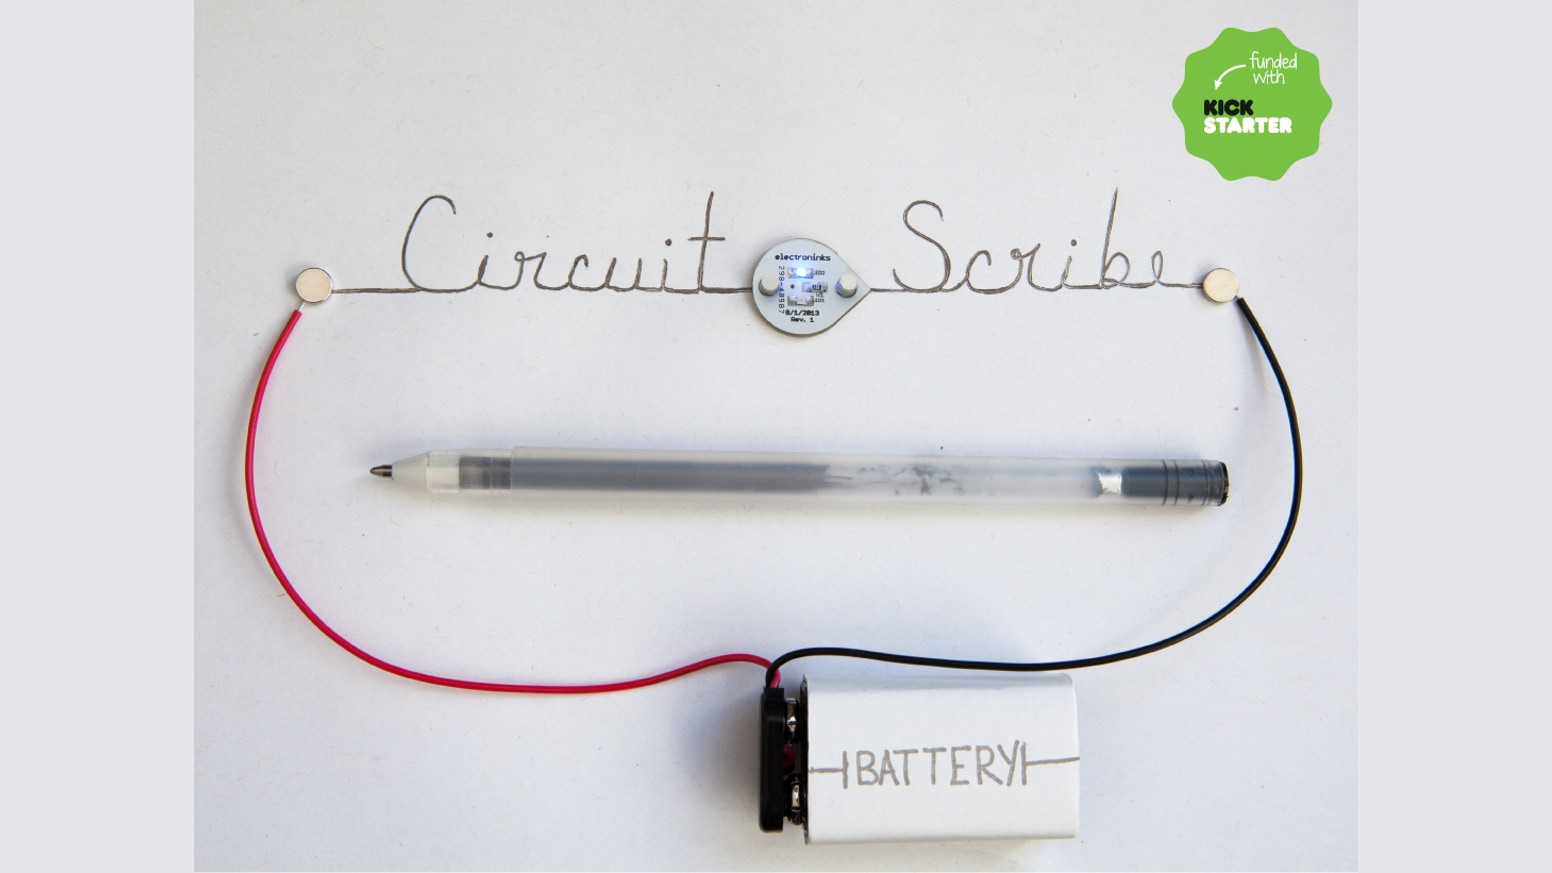 Circuit Scribe is a rollerball pen that writes with conductive silver ink. It makes creating circuits as easy as doodling.